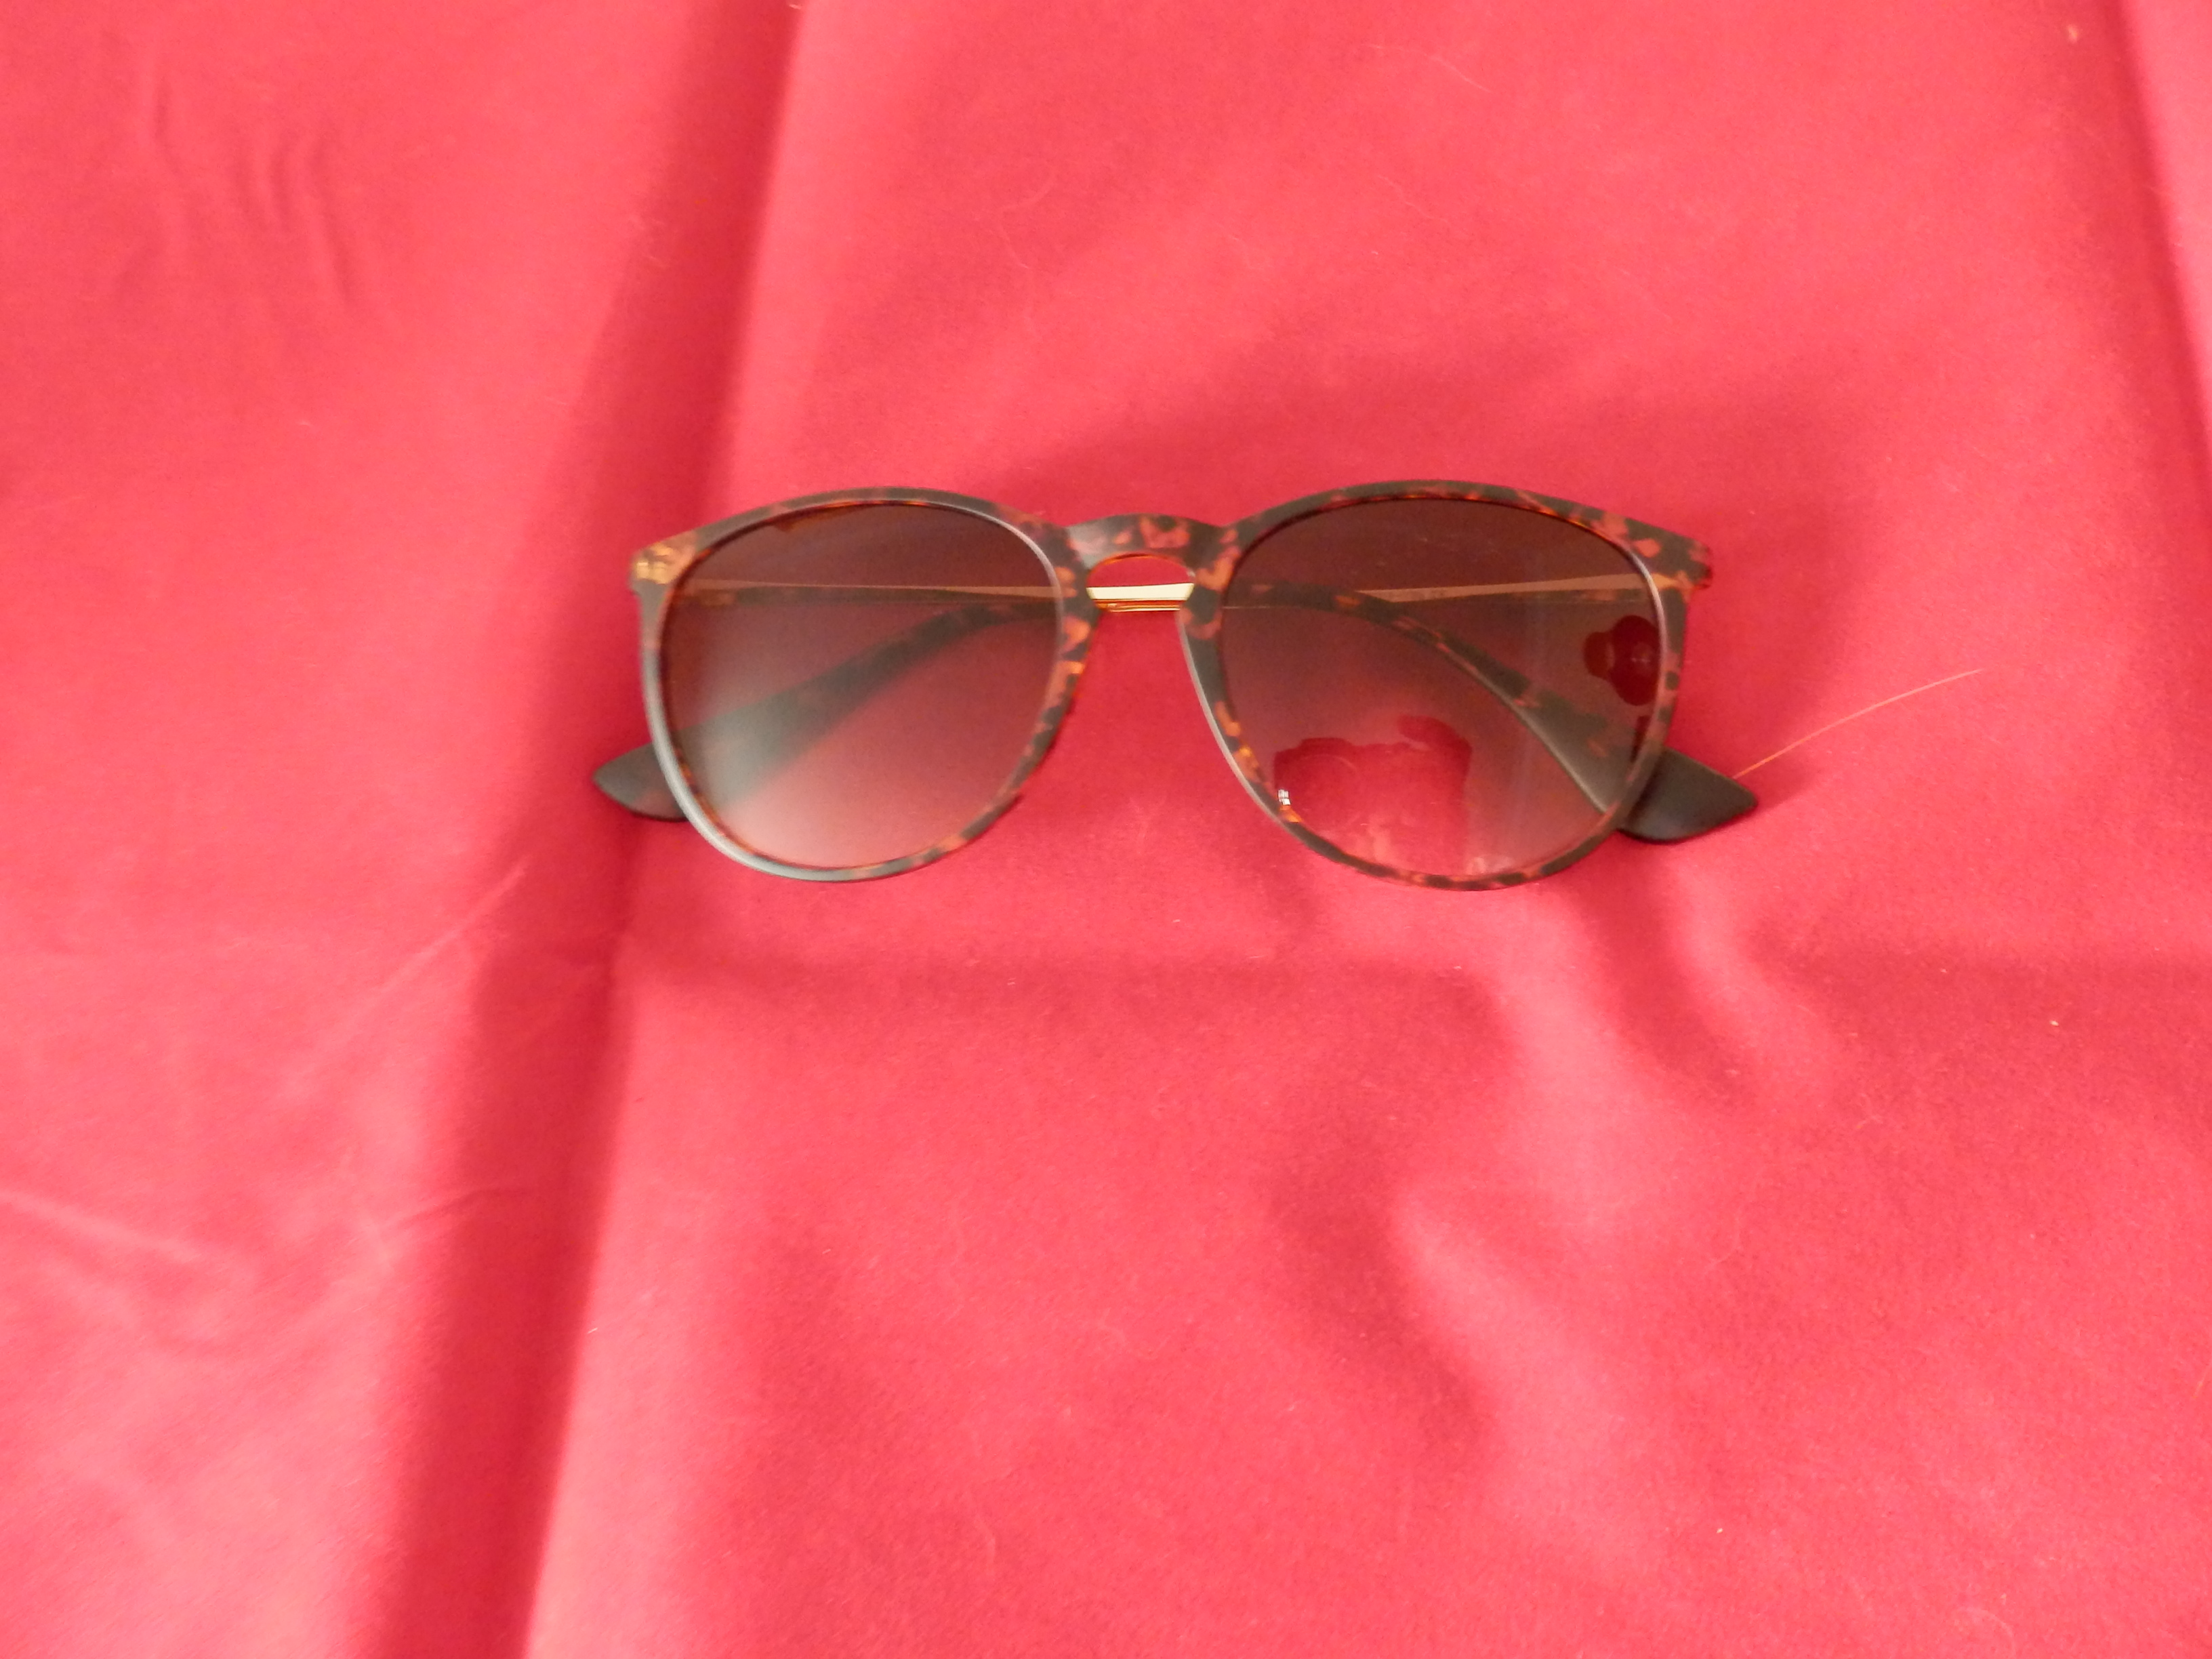 SUNGAIT Vintage Round Sunglasses for Women